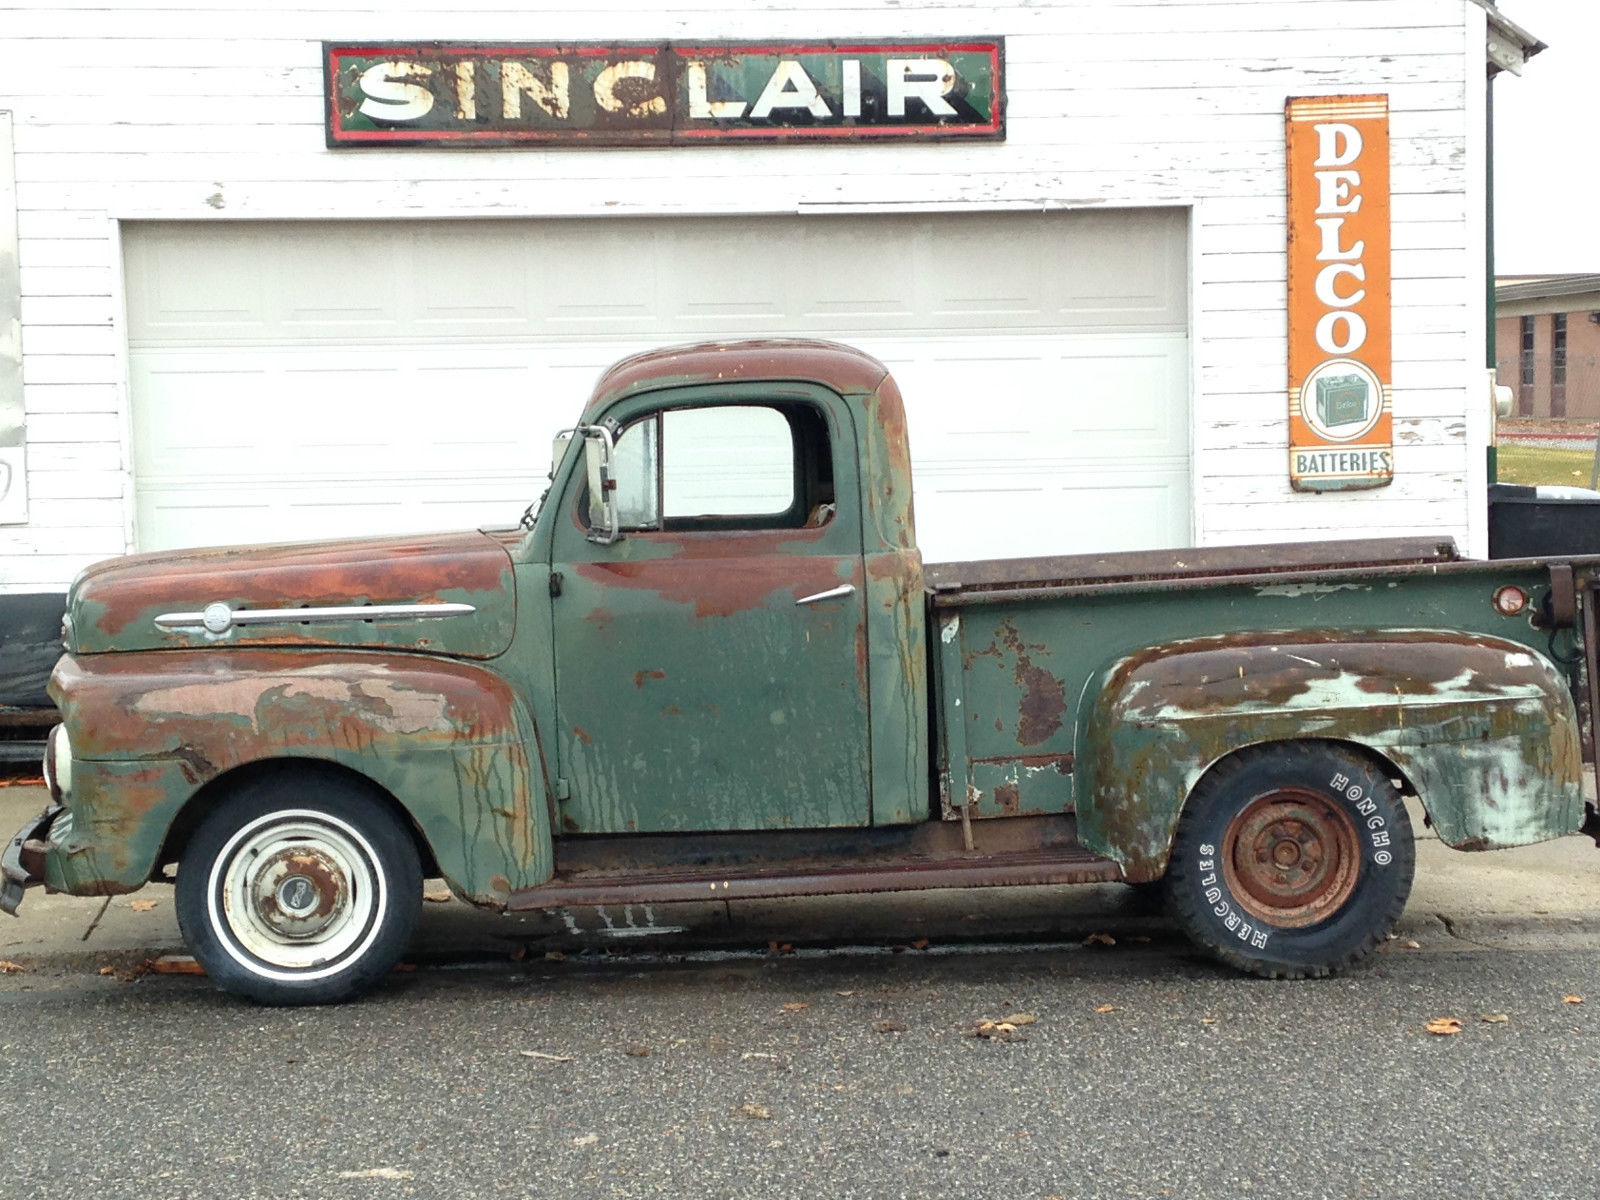 Ford F Flathead V Shortbed Pickup Truck Like on 1951 F1 Ford Short Bed